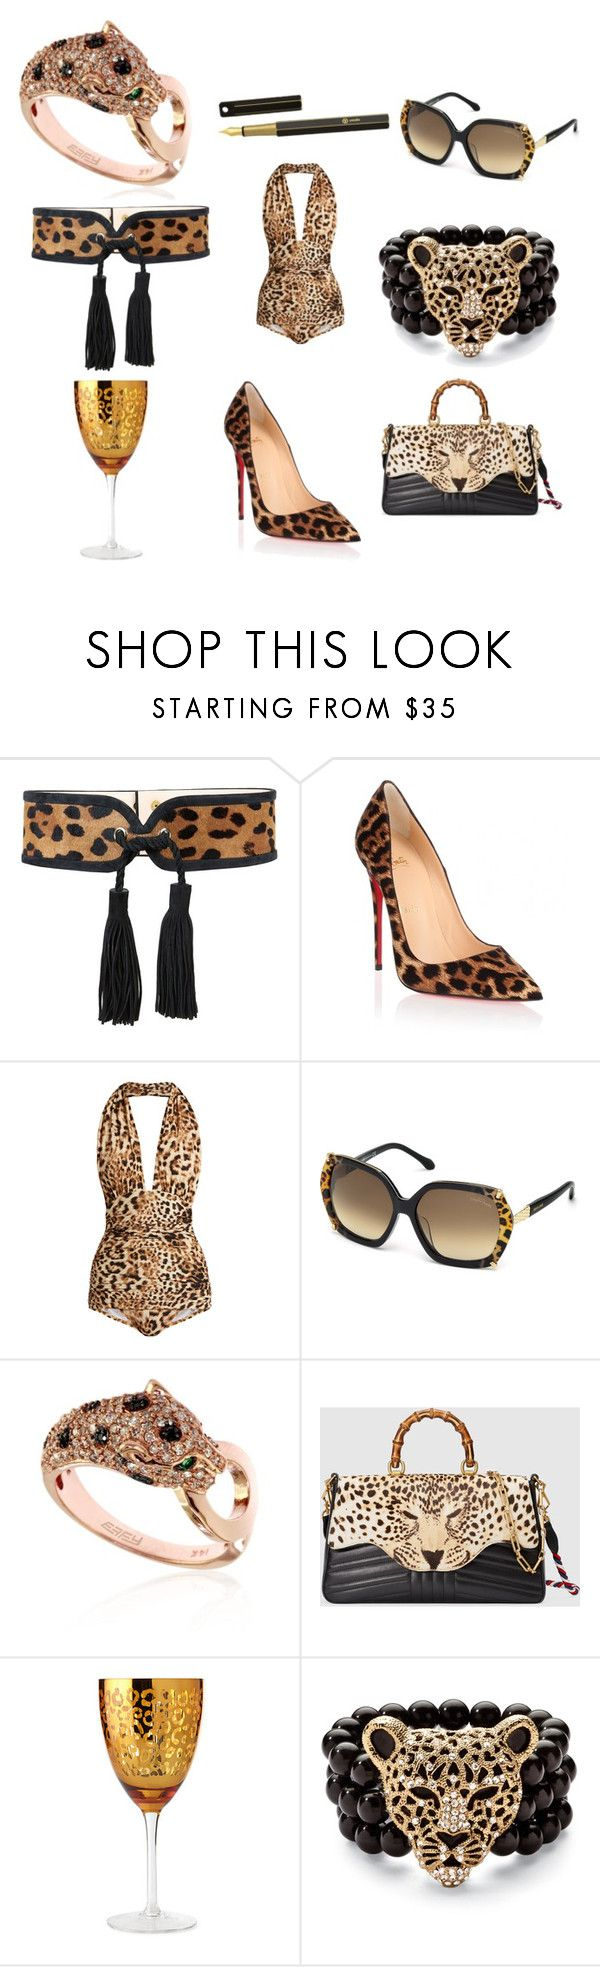 """WILD & WICKED"" by marguerite-dillworth on Polyvore featuring Balmain, Christian Louboutin, Norma Kamali, Roberto Cavalli, Effy Jewelry, Gucci, Artland, Palm Beach Jewelry and ystudio"